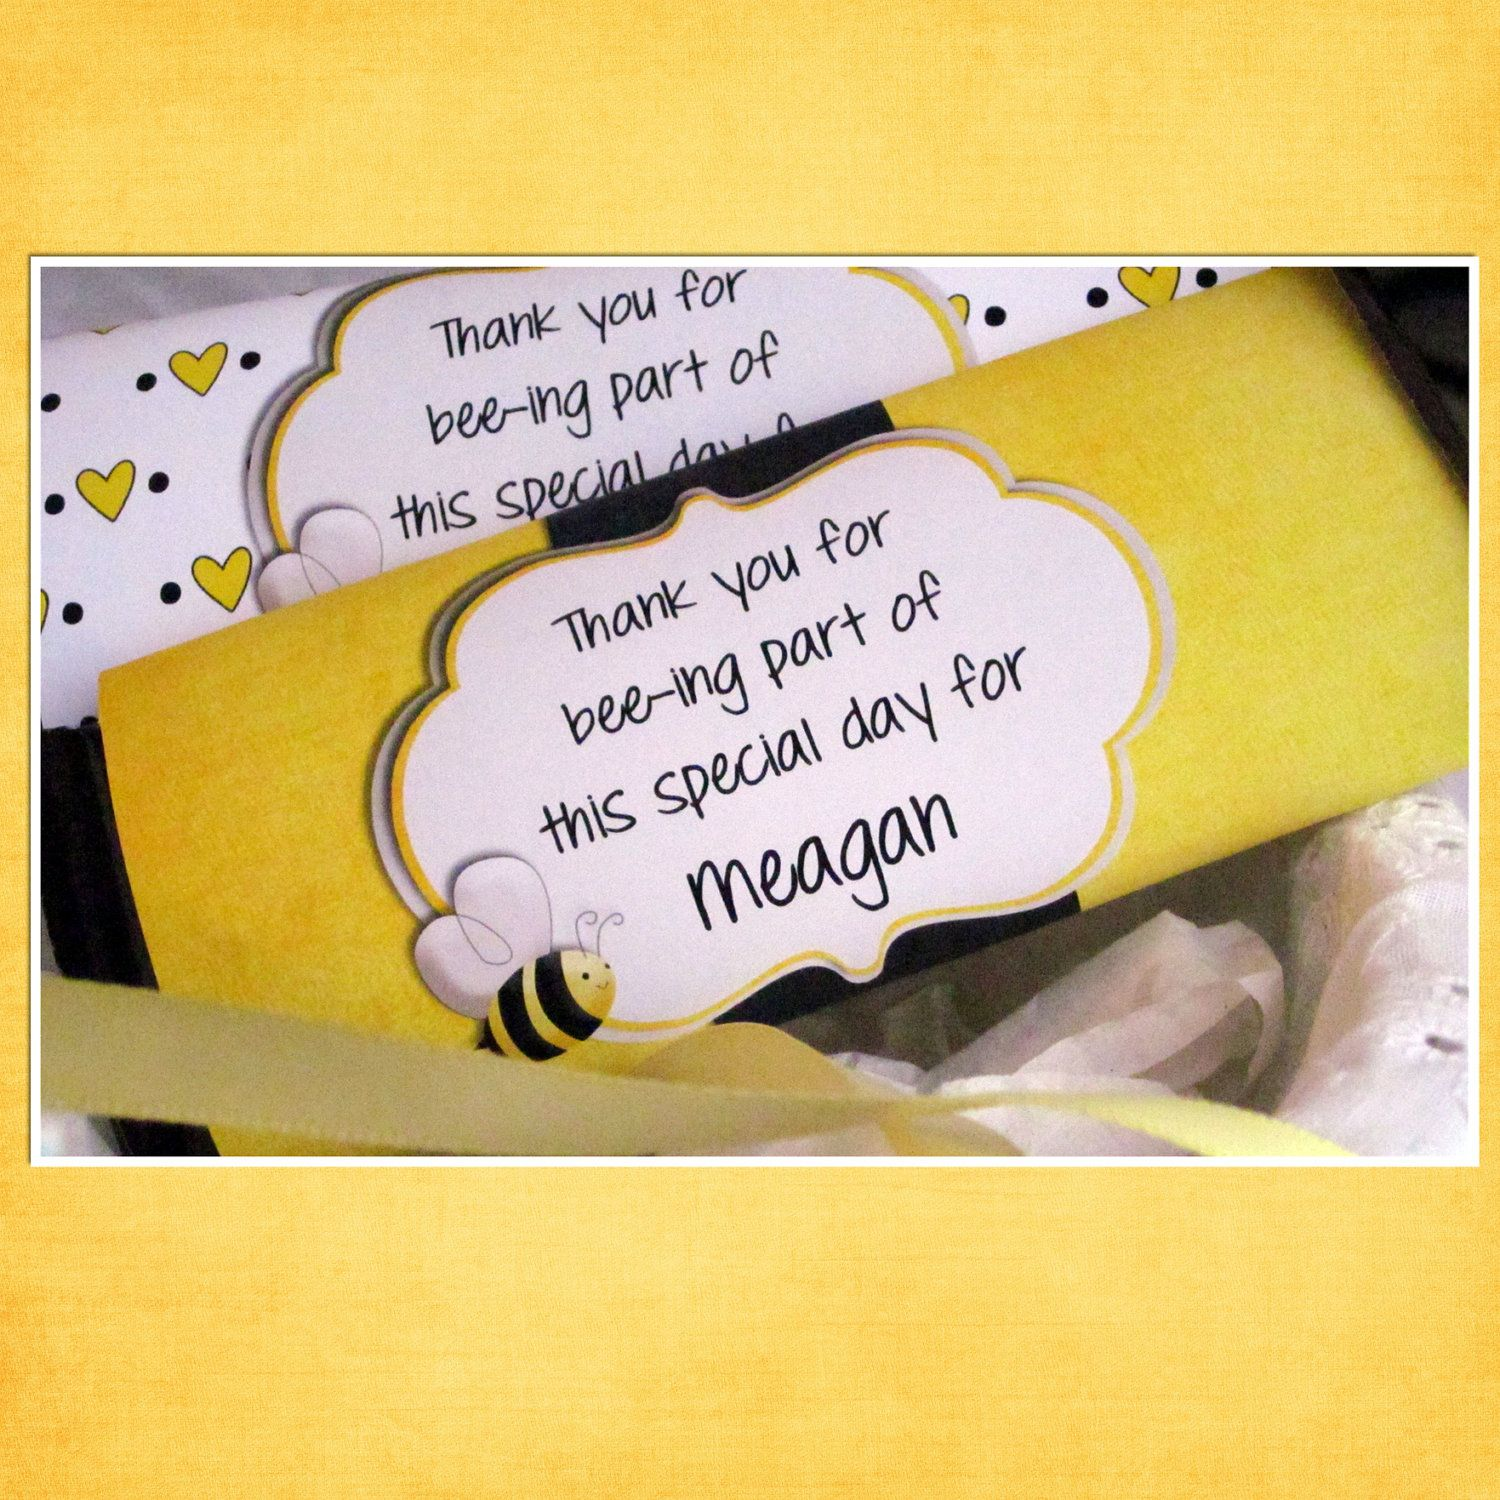 lovely elegant shower of boy decor brainstroming baby bumble bee new decorations idea